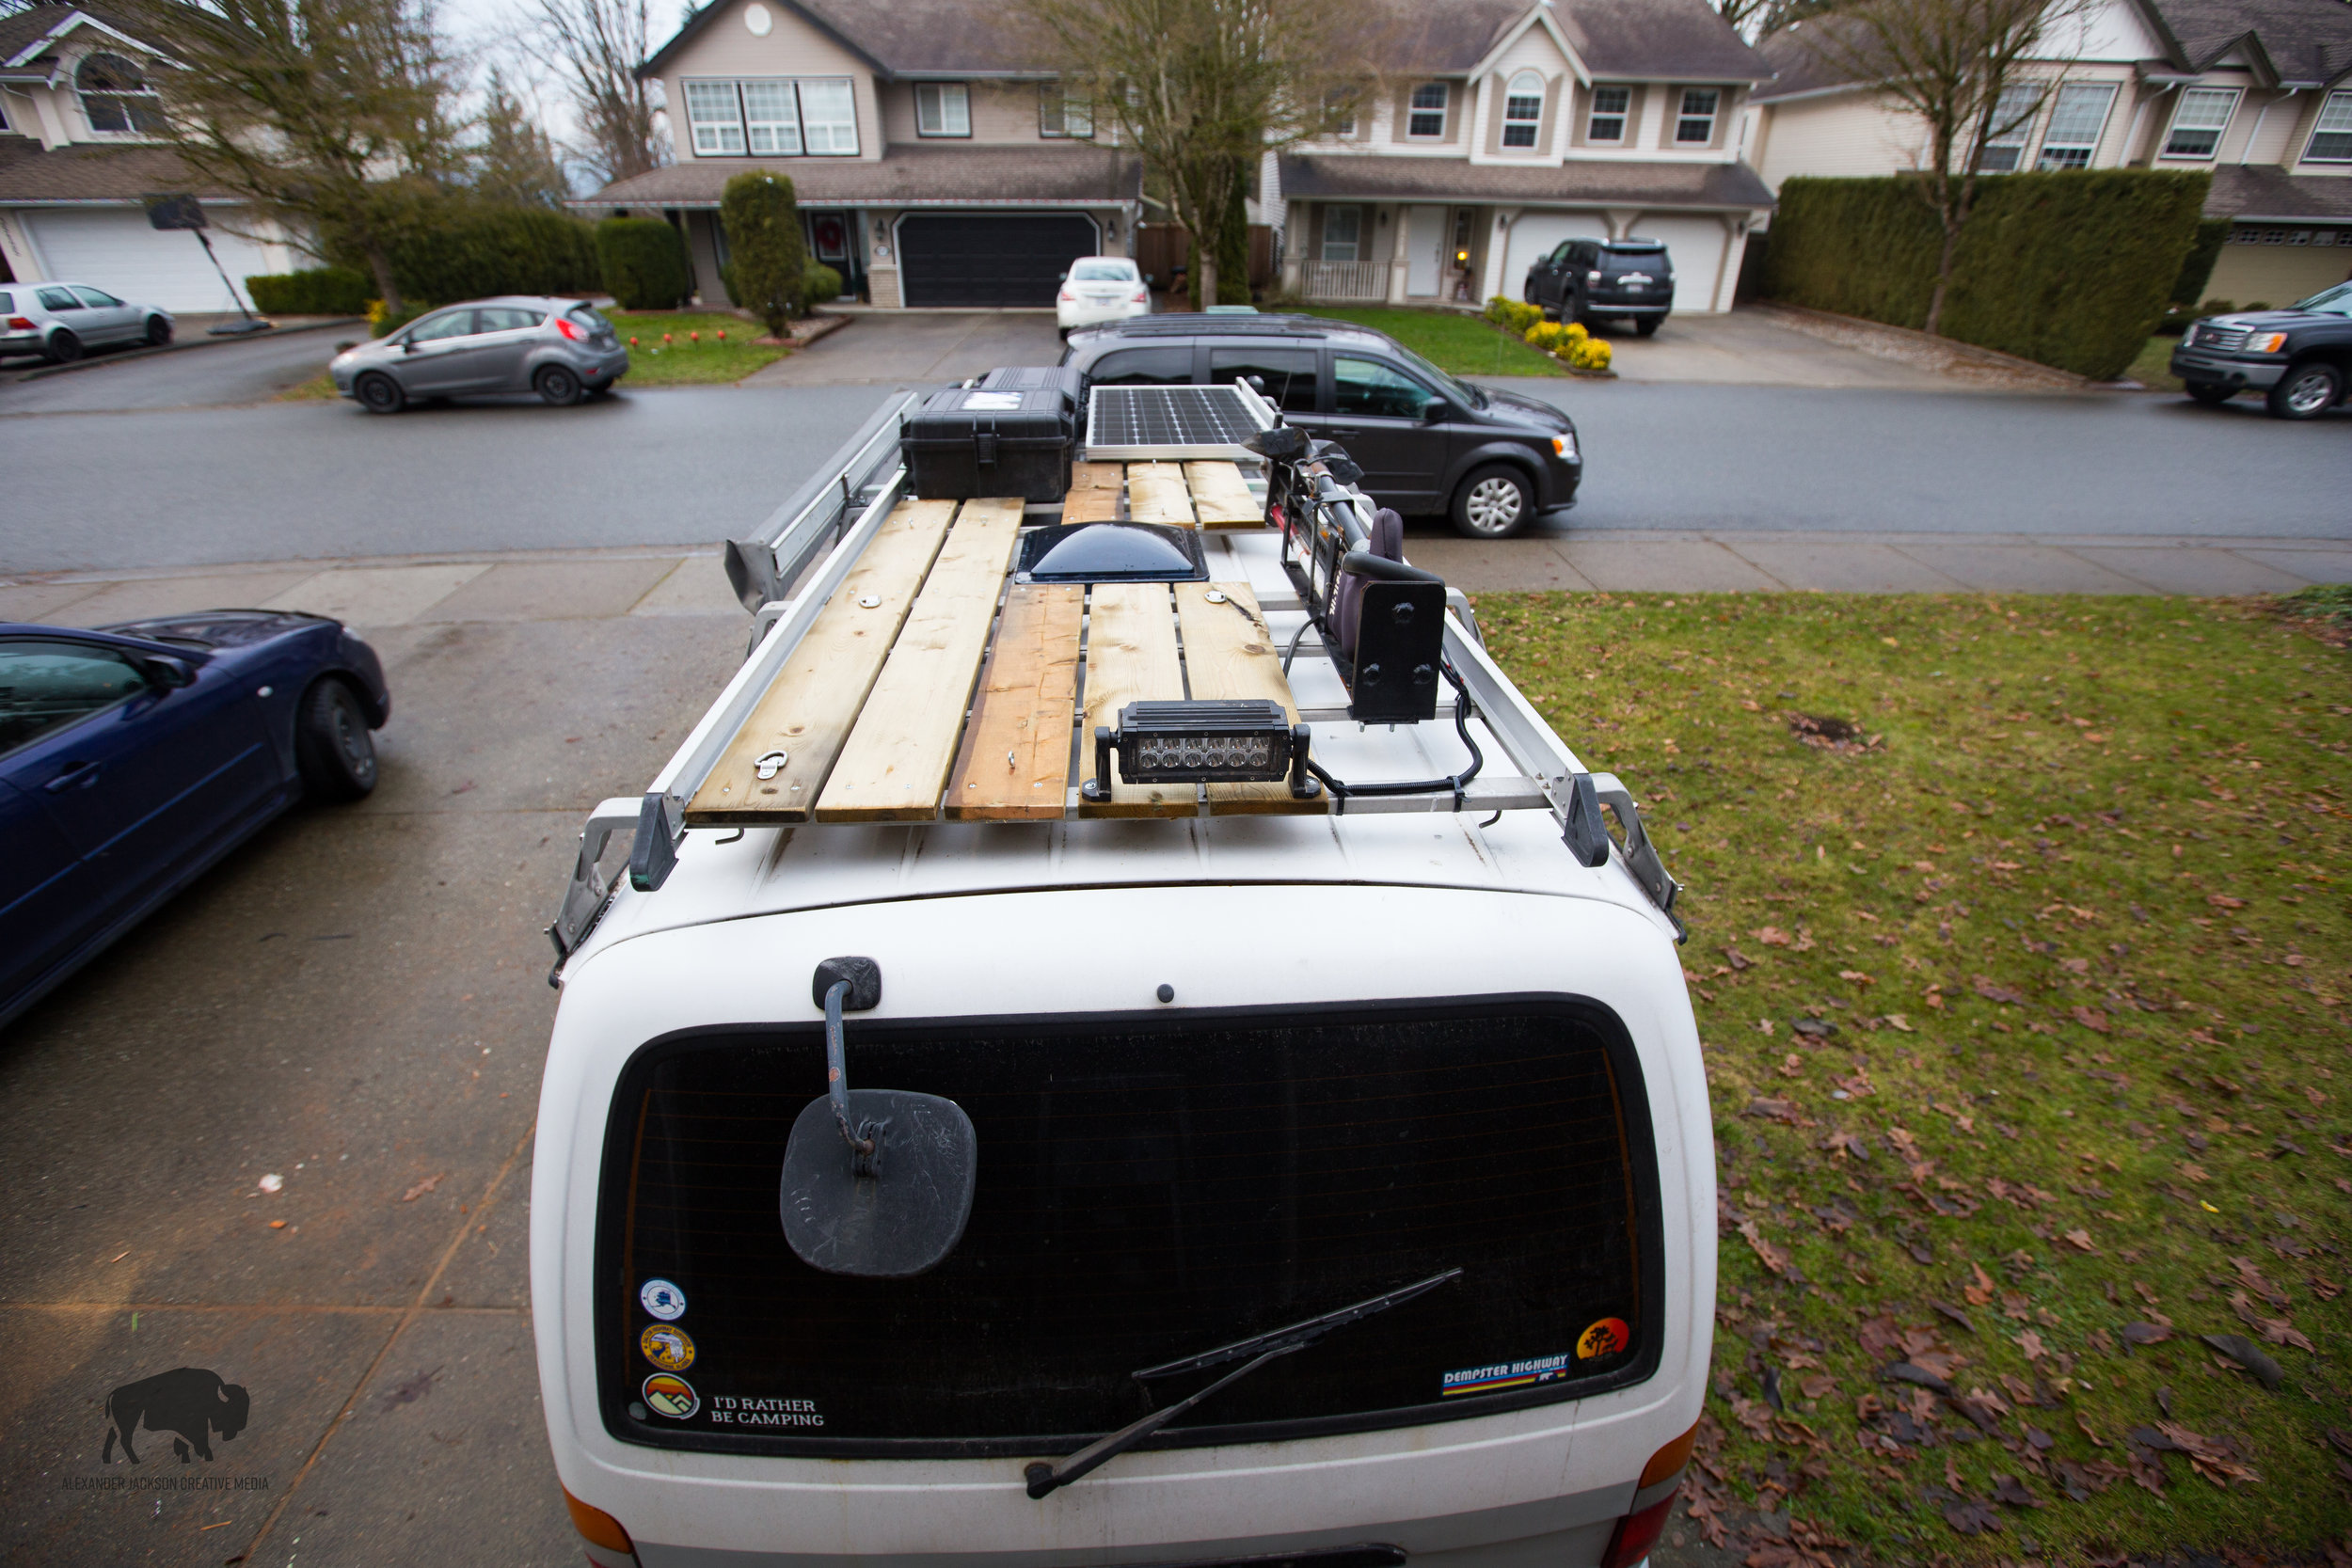 Last, but not least, I have a deck on the top of the van now! Huzzah!